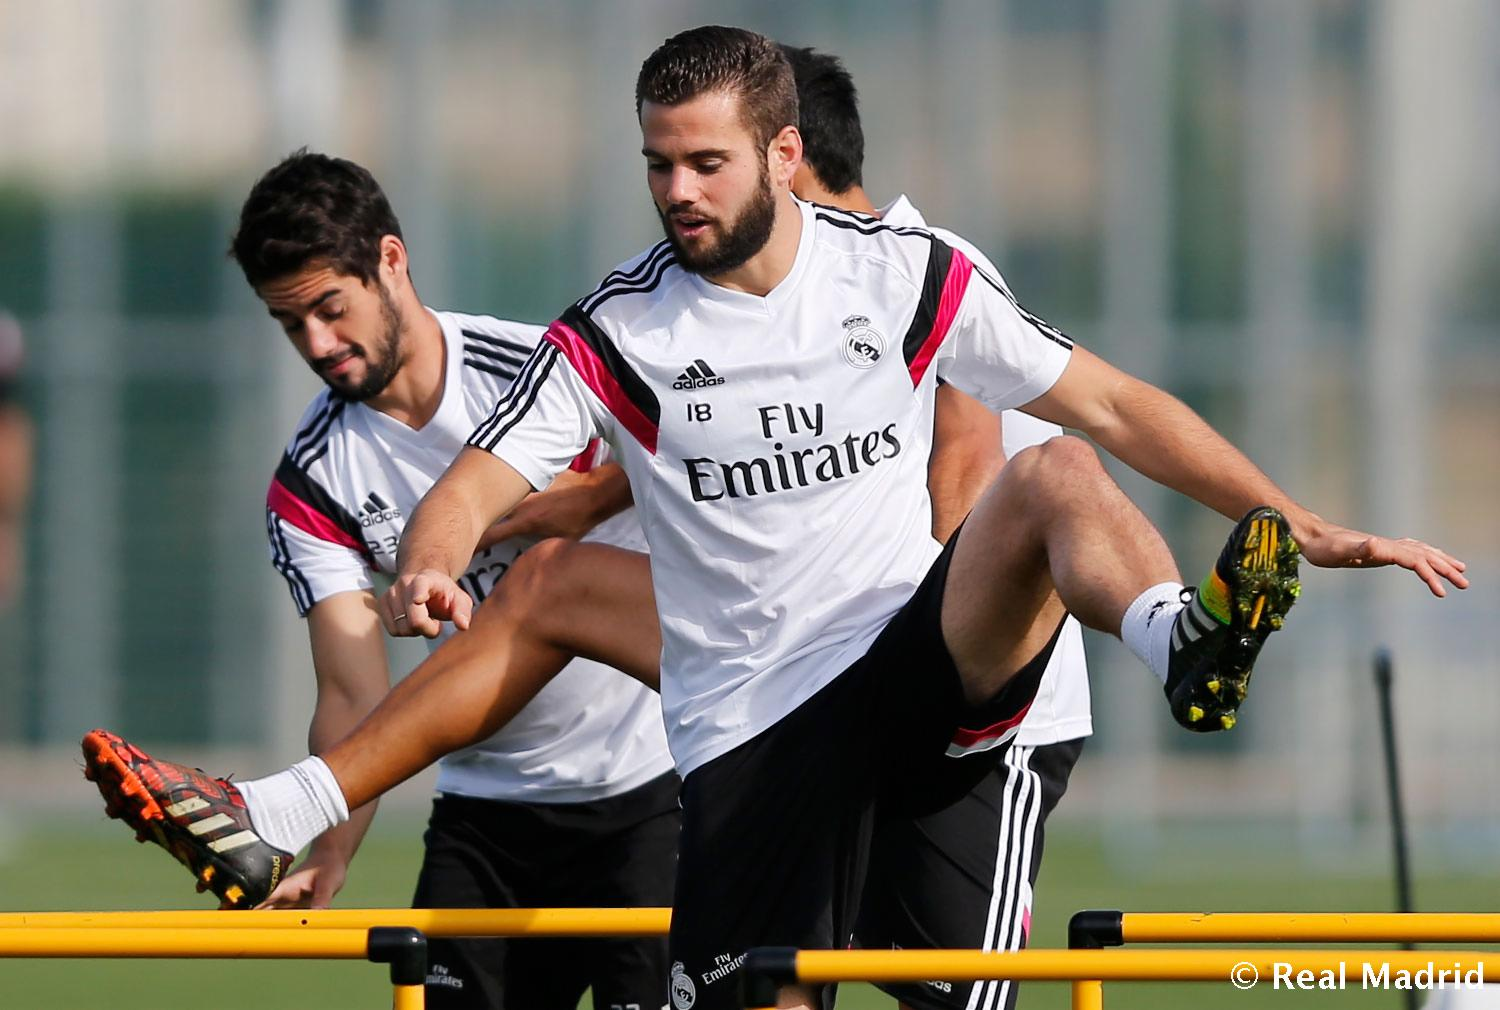 Real Madrid - Entrenamiento del Real Madrid - 21-09-2014